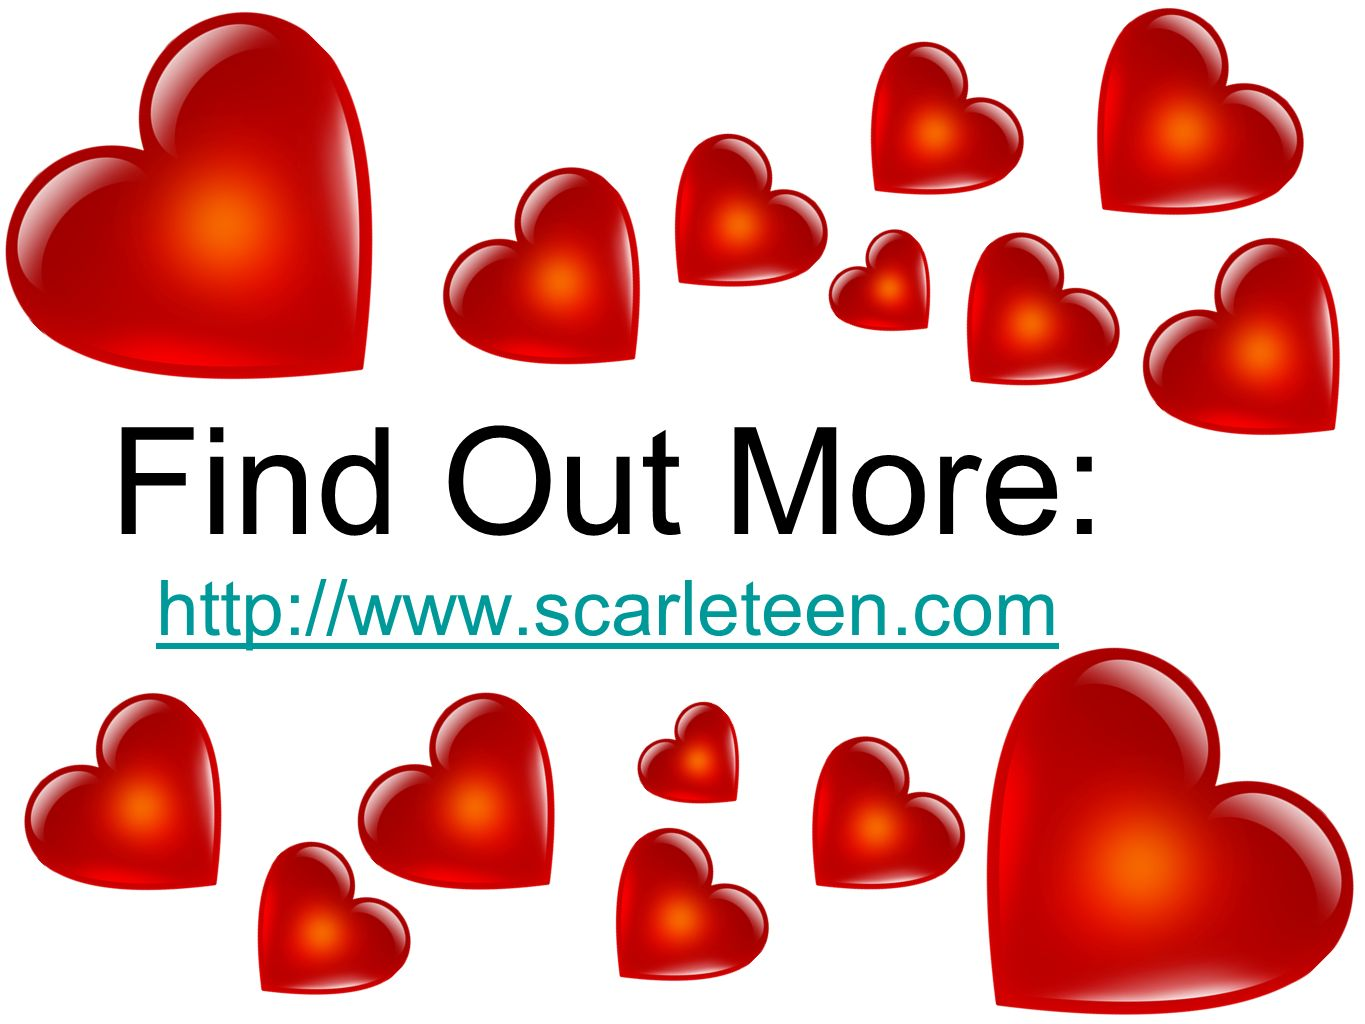 Find Out More: http://www.scarleteen.com